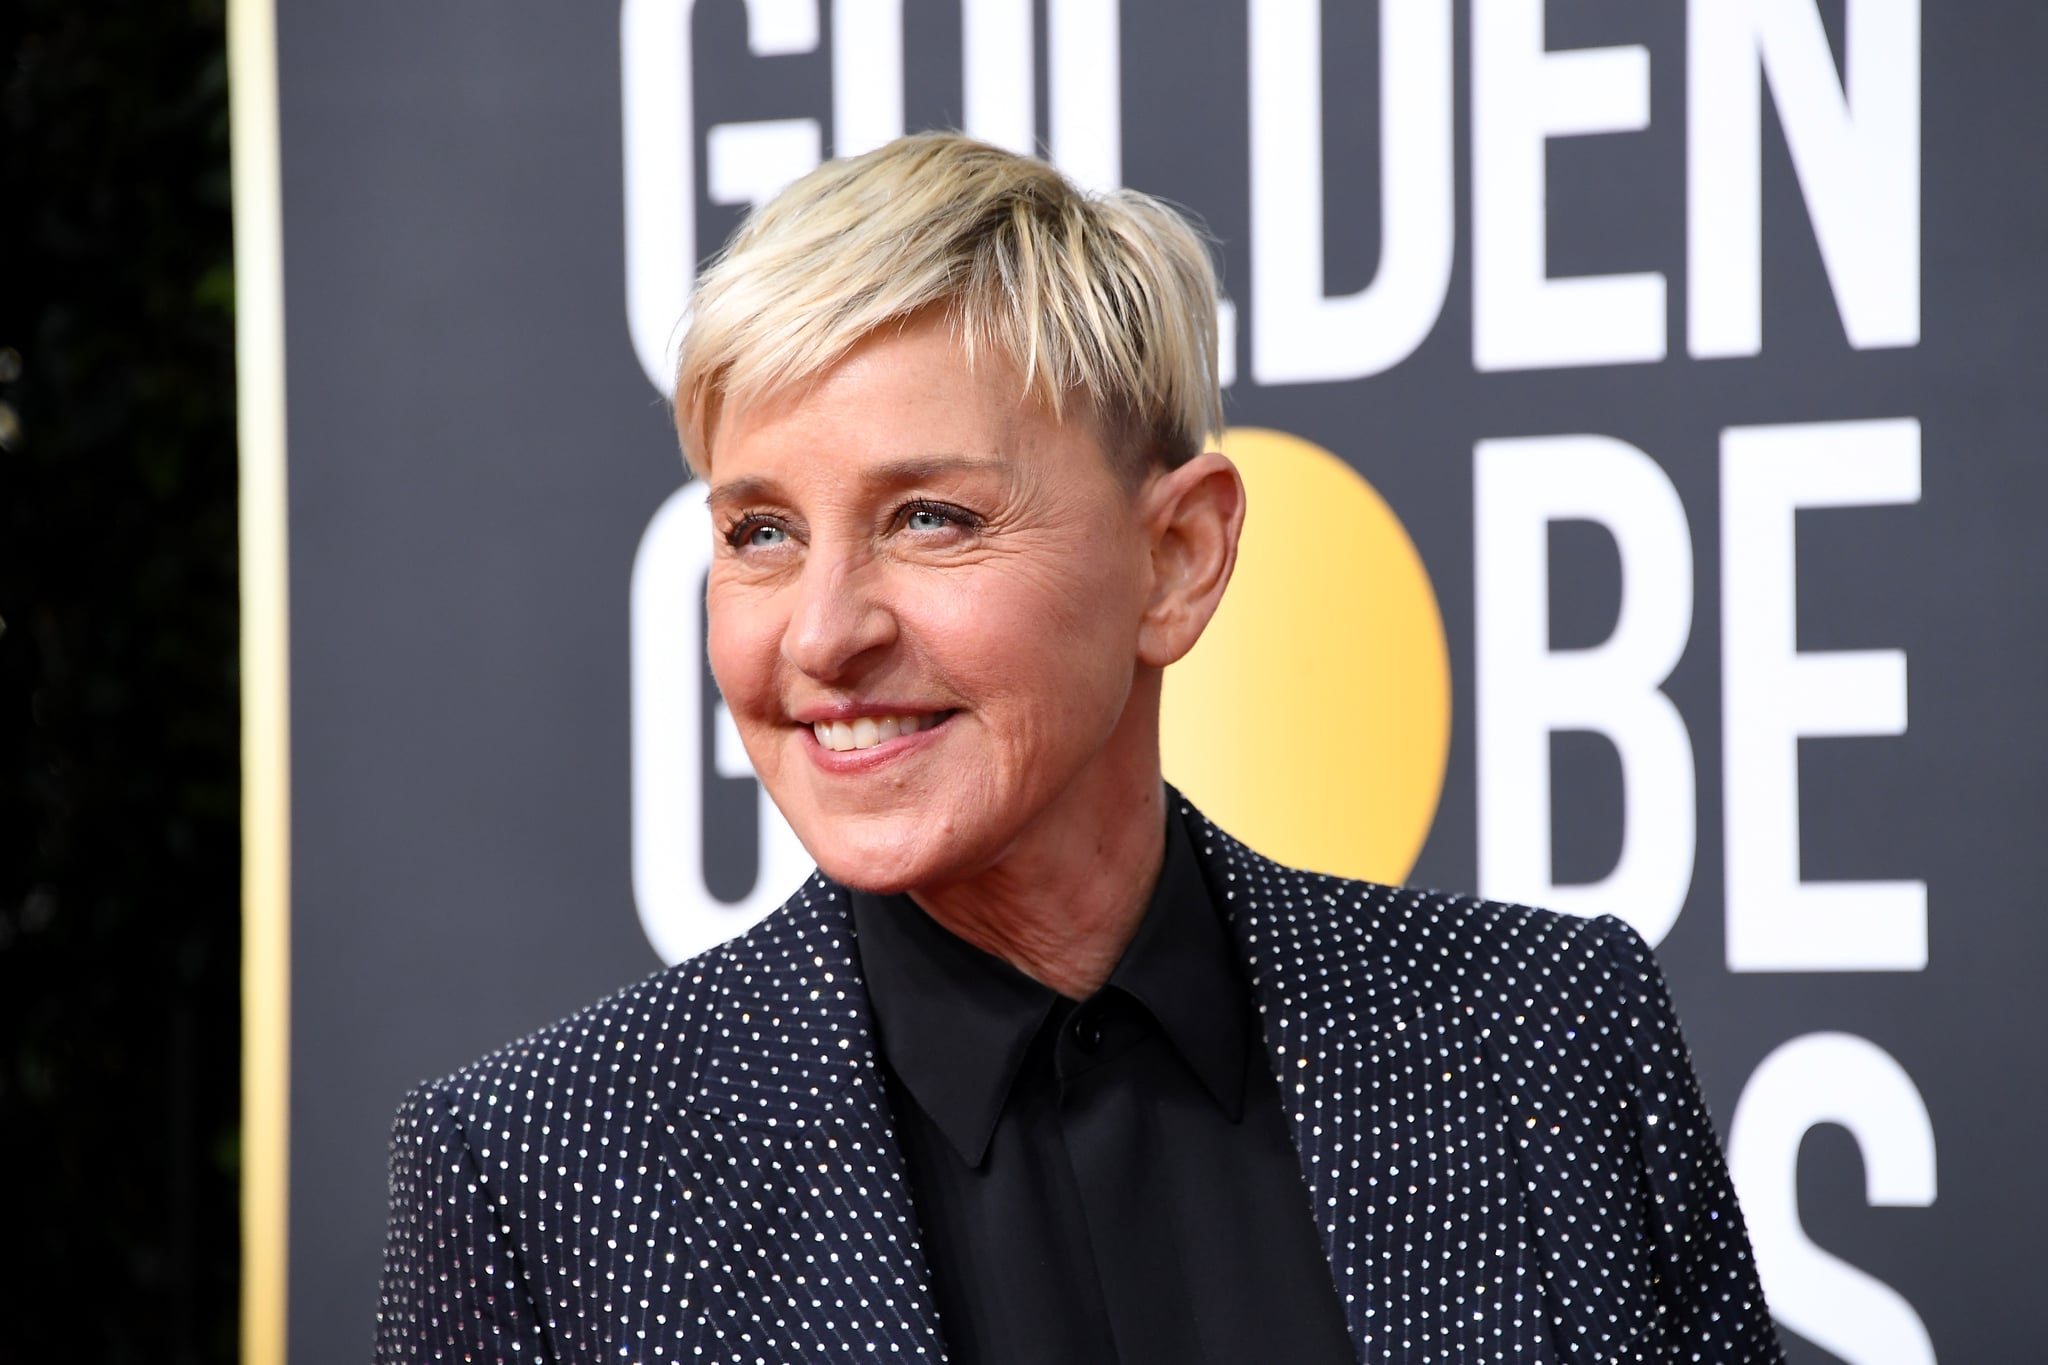 BEVERLY HILLS, CALIFORNIA - JANUARY 05: Ellen DeGeneres attends the 77th Annual Golden Globe Awards at The Beverly Hilton Hotel on January 05, 2020 in Beverly Hills, California. (Photo by Steve Granitz/WireImage)